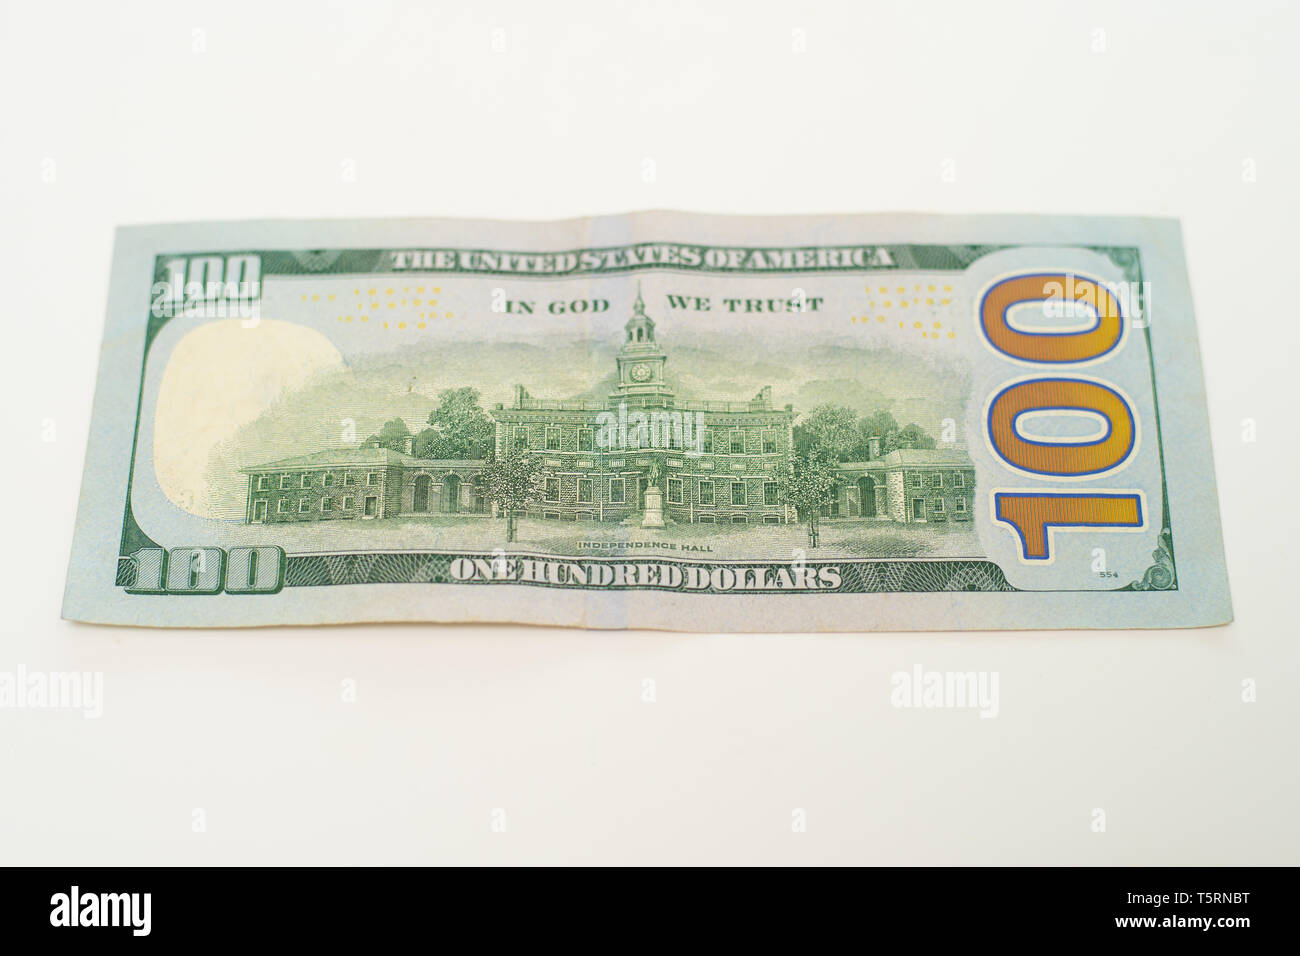 The back of a One hundred dollar bill. - Stock Image